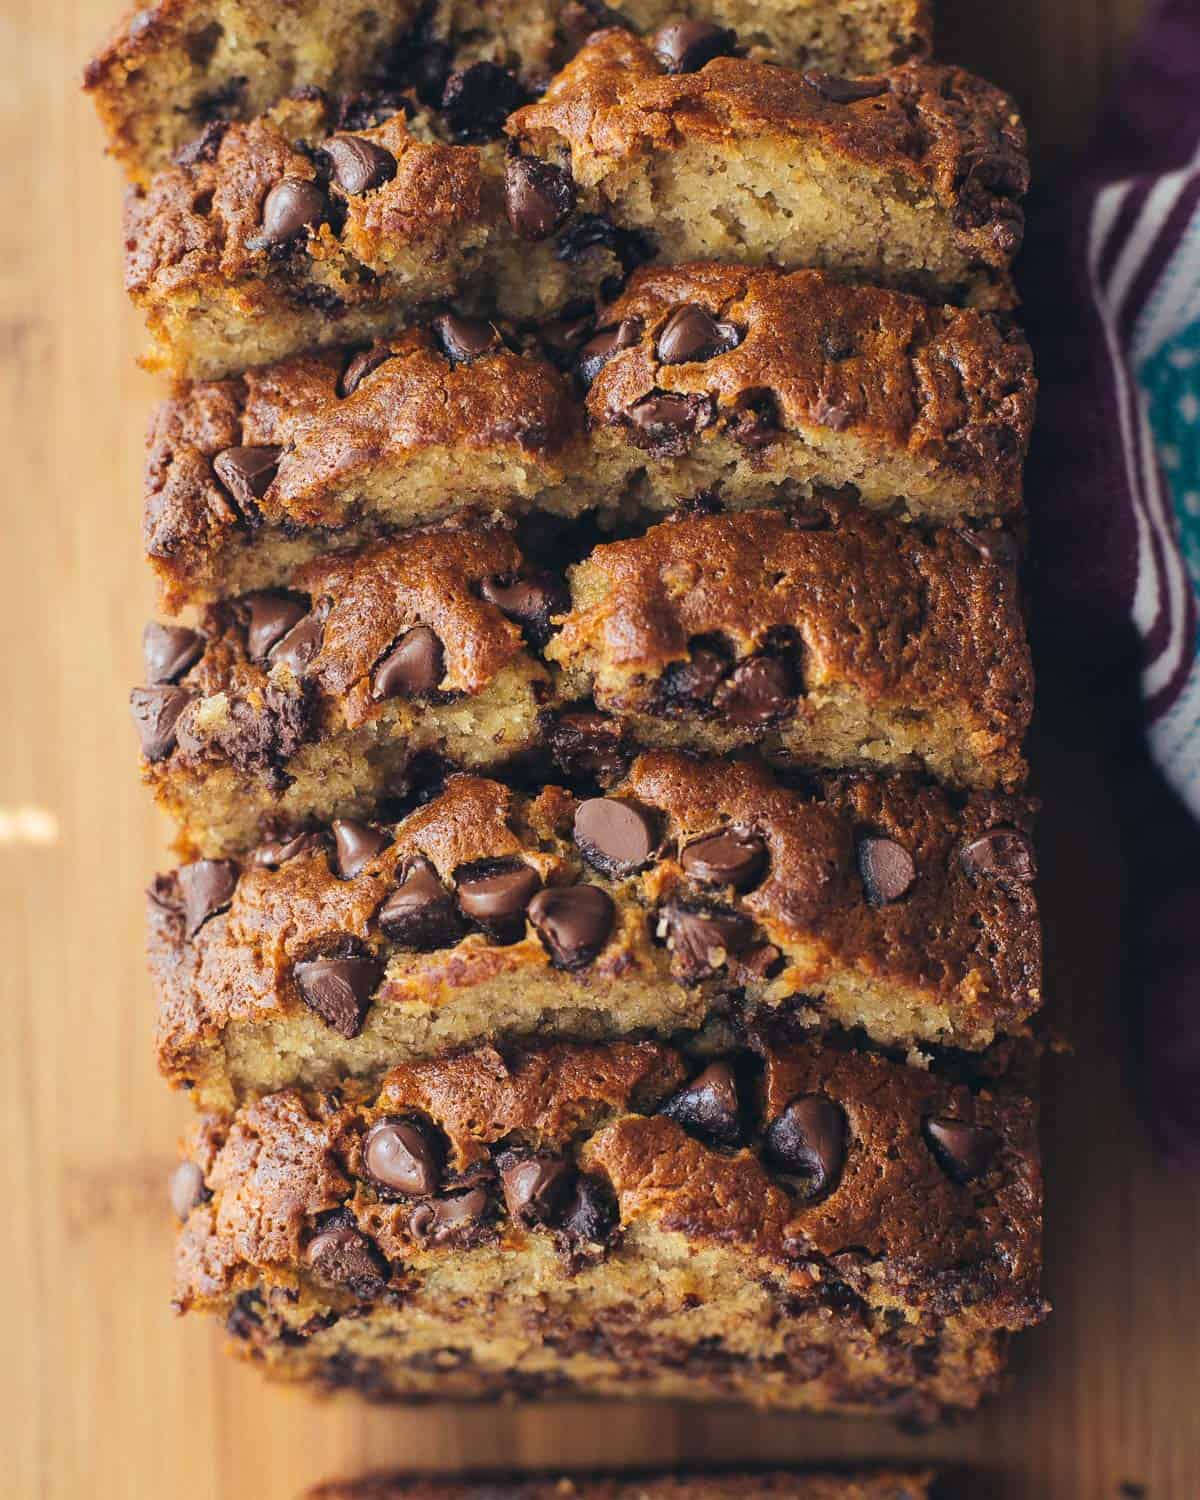 banana bread slices with chocolate chips